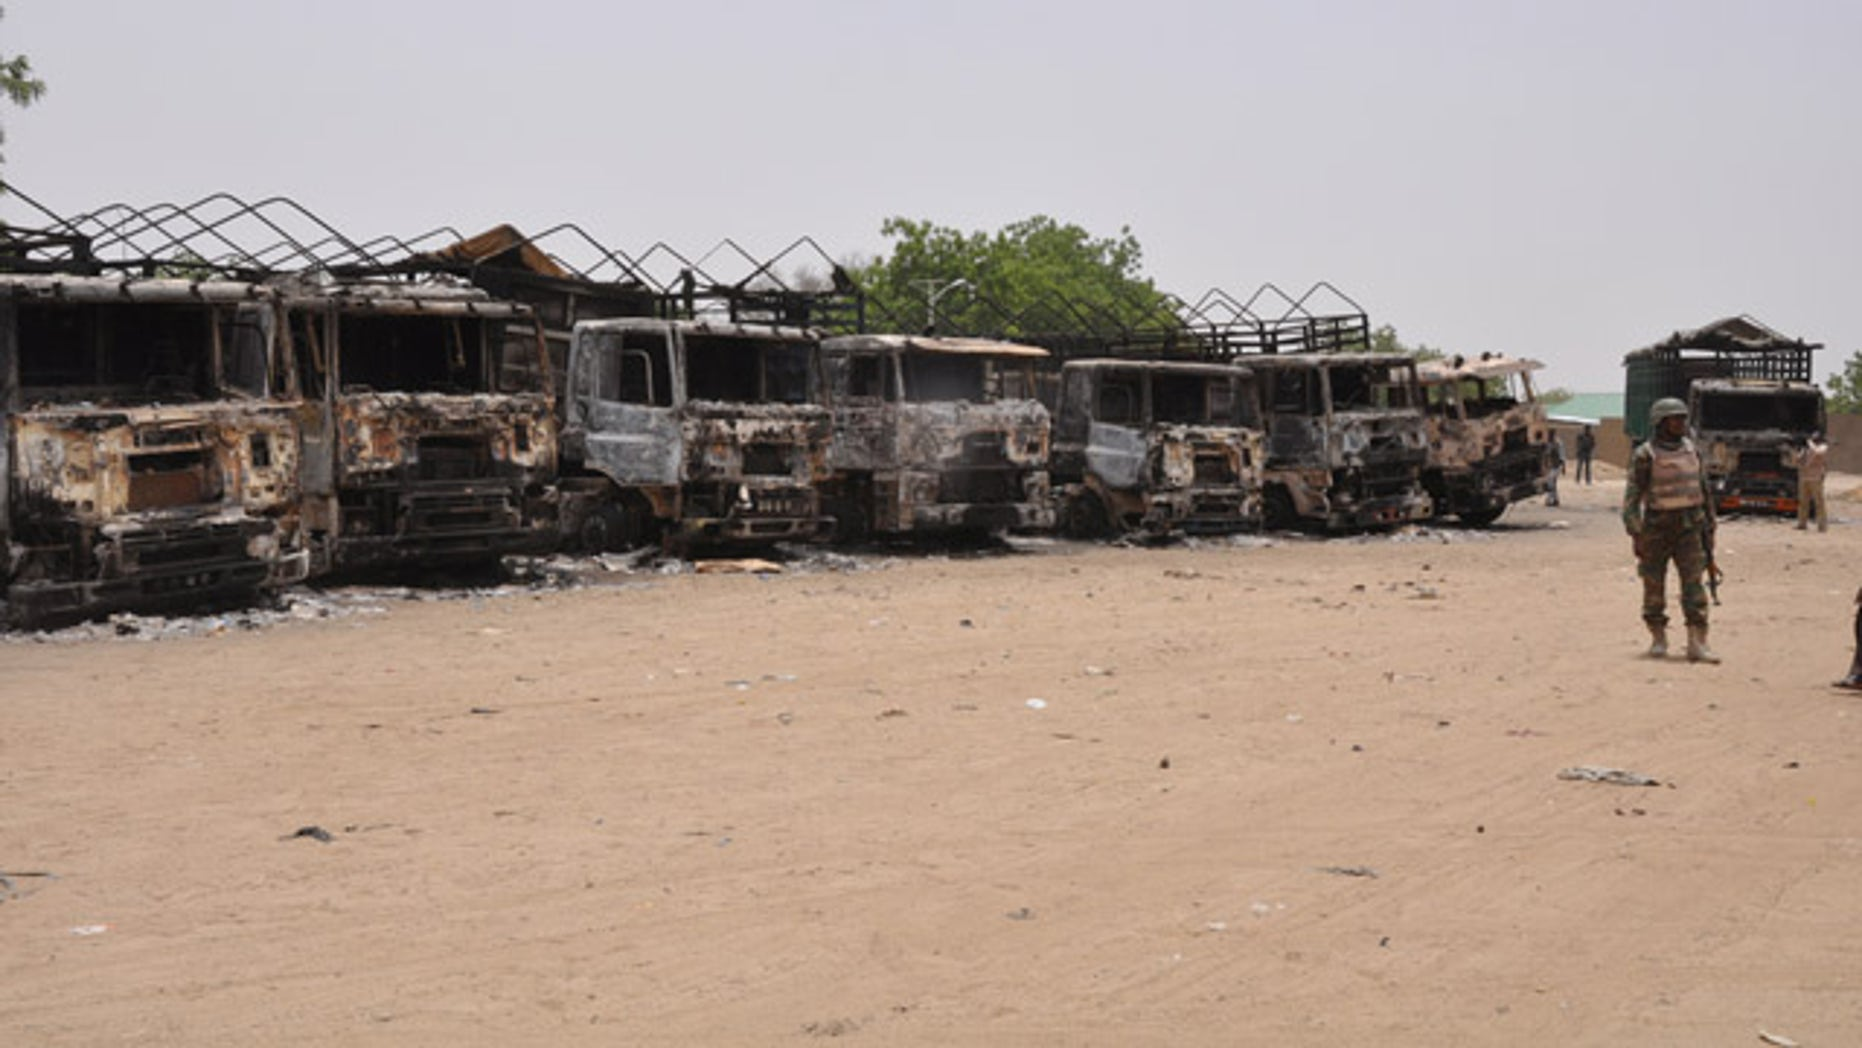 May 11, 2014: A soldier stands guard in front of burnt trucks following an attack by Islamic militants in Gambaru, Nigeria.  (AP Photo/Jossy Ola)